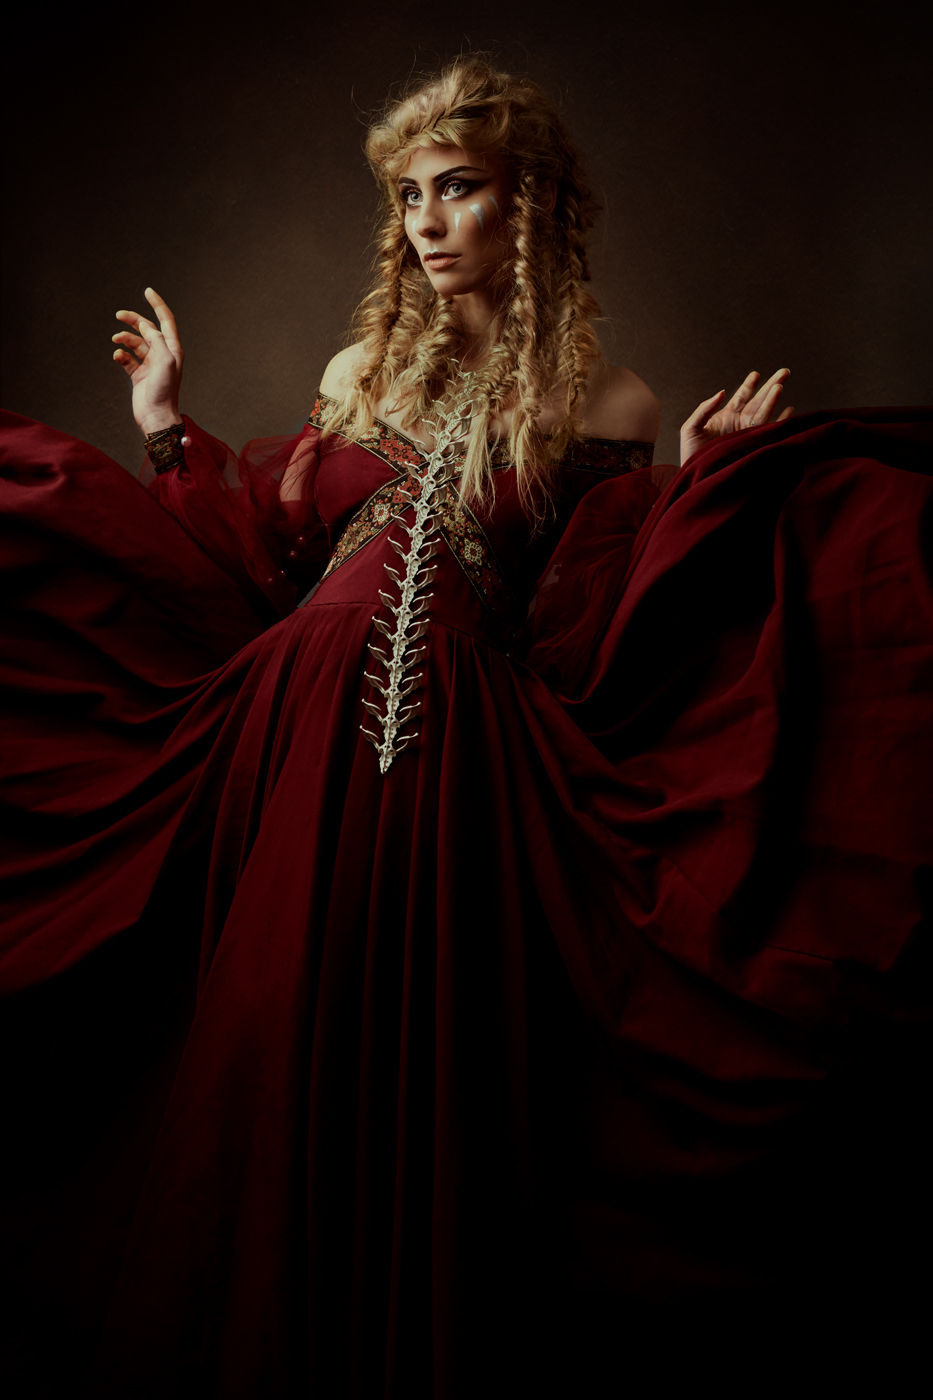 Find the blog & light diagram about this shoot here:  Wynvyre - Part 1 .   The spine worn by Luce Del Sole - Hair & Makeup by Eline Deblauwe - Dress by Maria Heller Designs - Photography & Edit by Laura Sheridan / Studio Sheridan's Art.